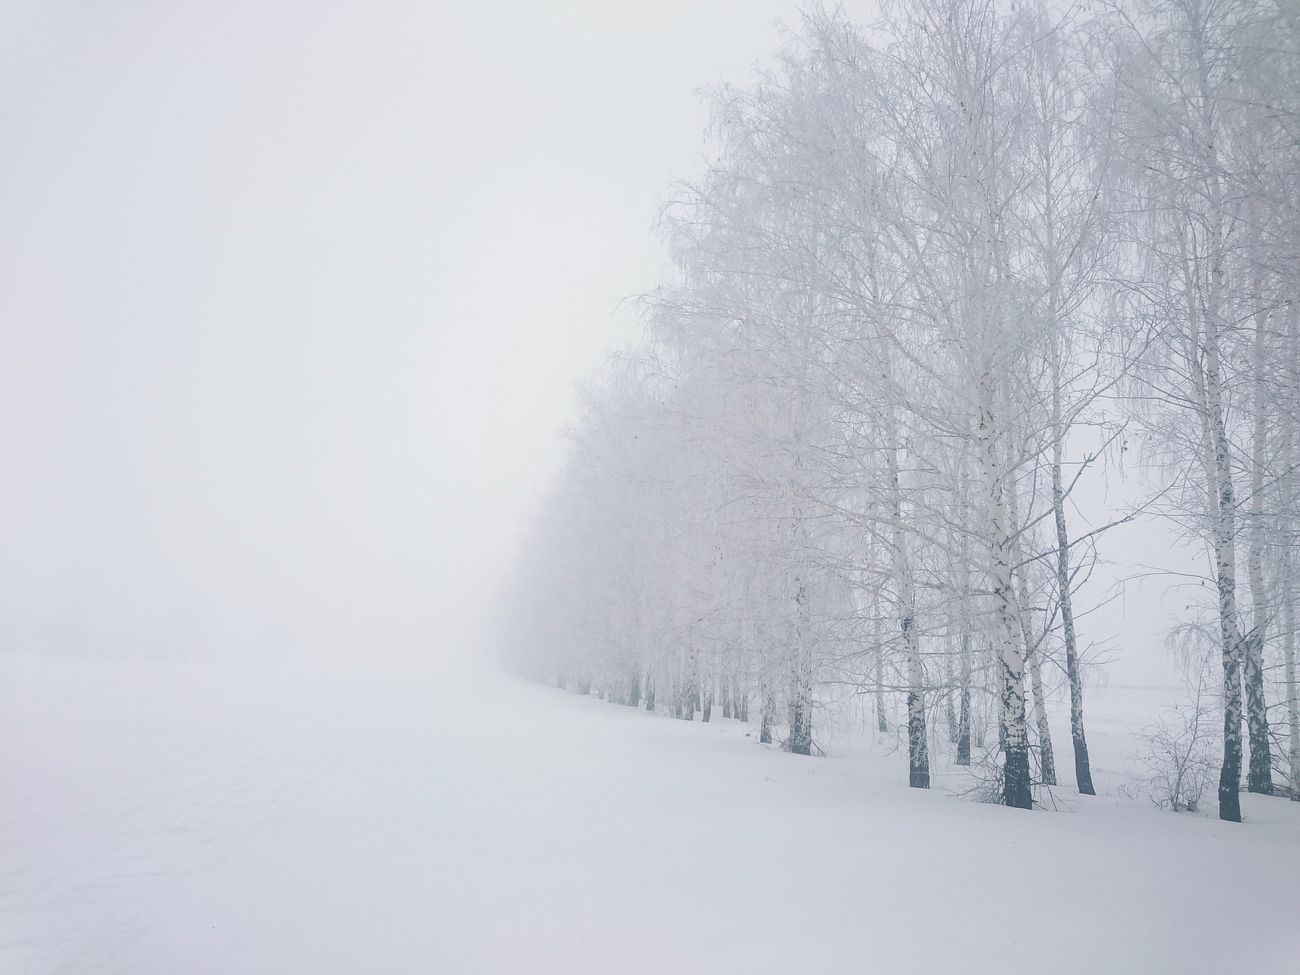 Snow Winter Cold Temperature Tree Snowing Forest Nature Fog Landscape Scenics No People Day Beauty In Nature Outdoors Sky зима туман береза лес и природа FromRussiaWithLove